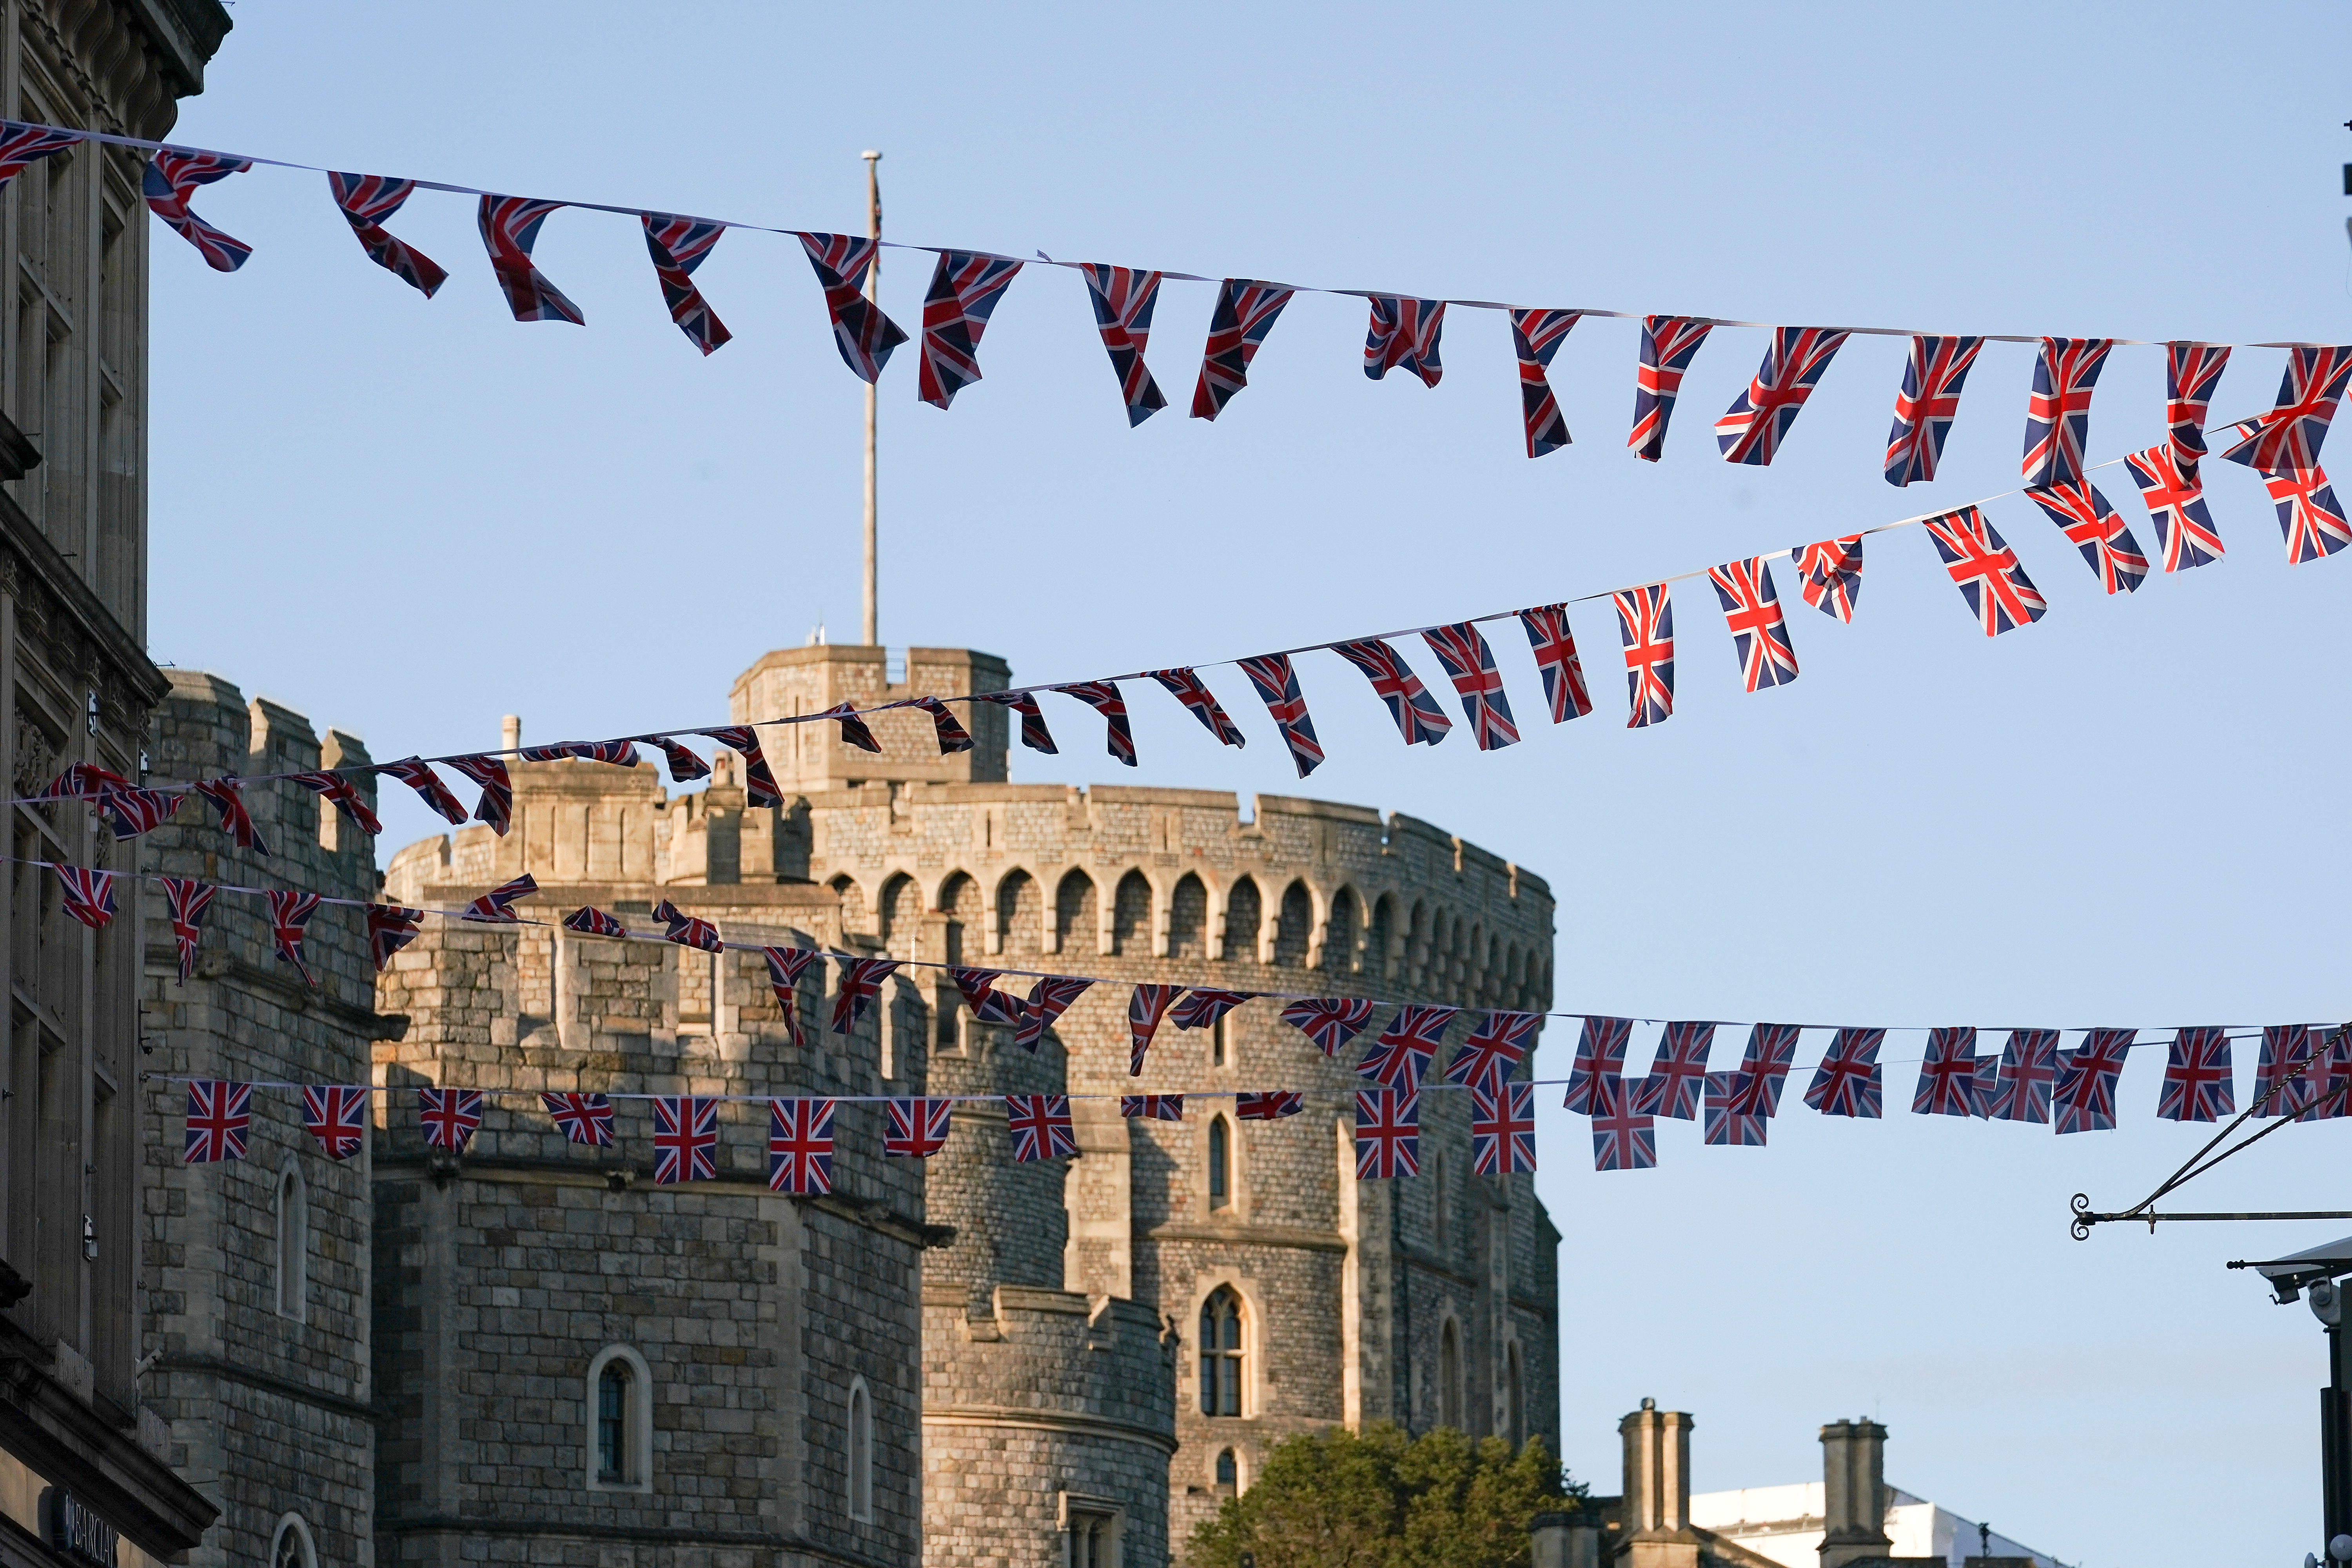 Guests will begin arriving at Windsor Castle around 9 a.m.